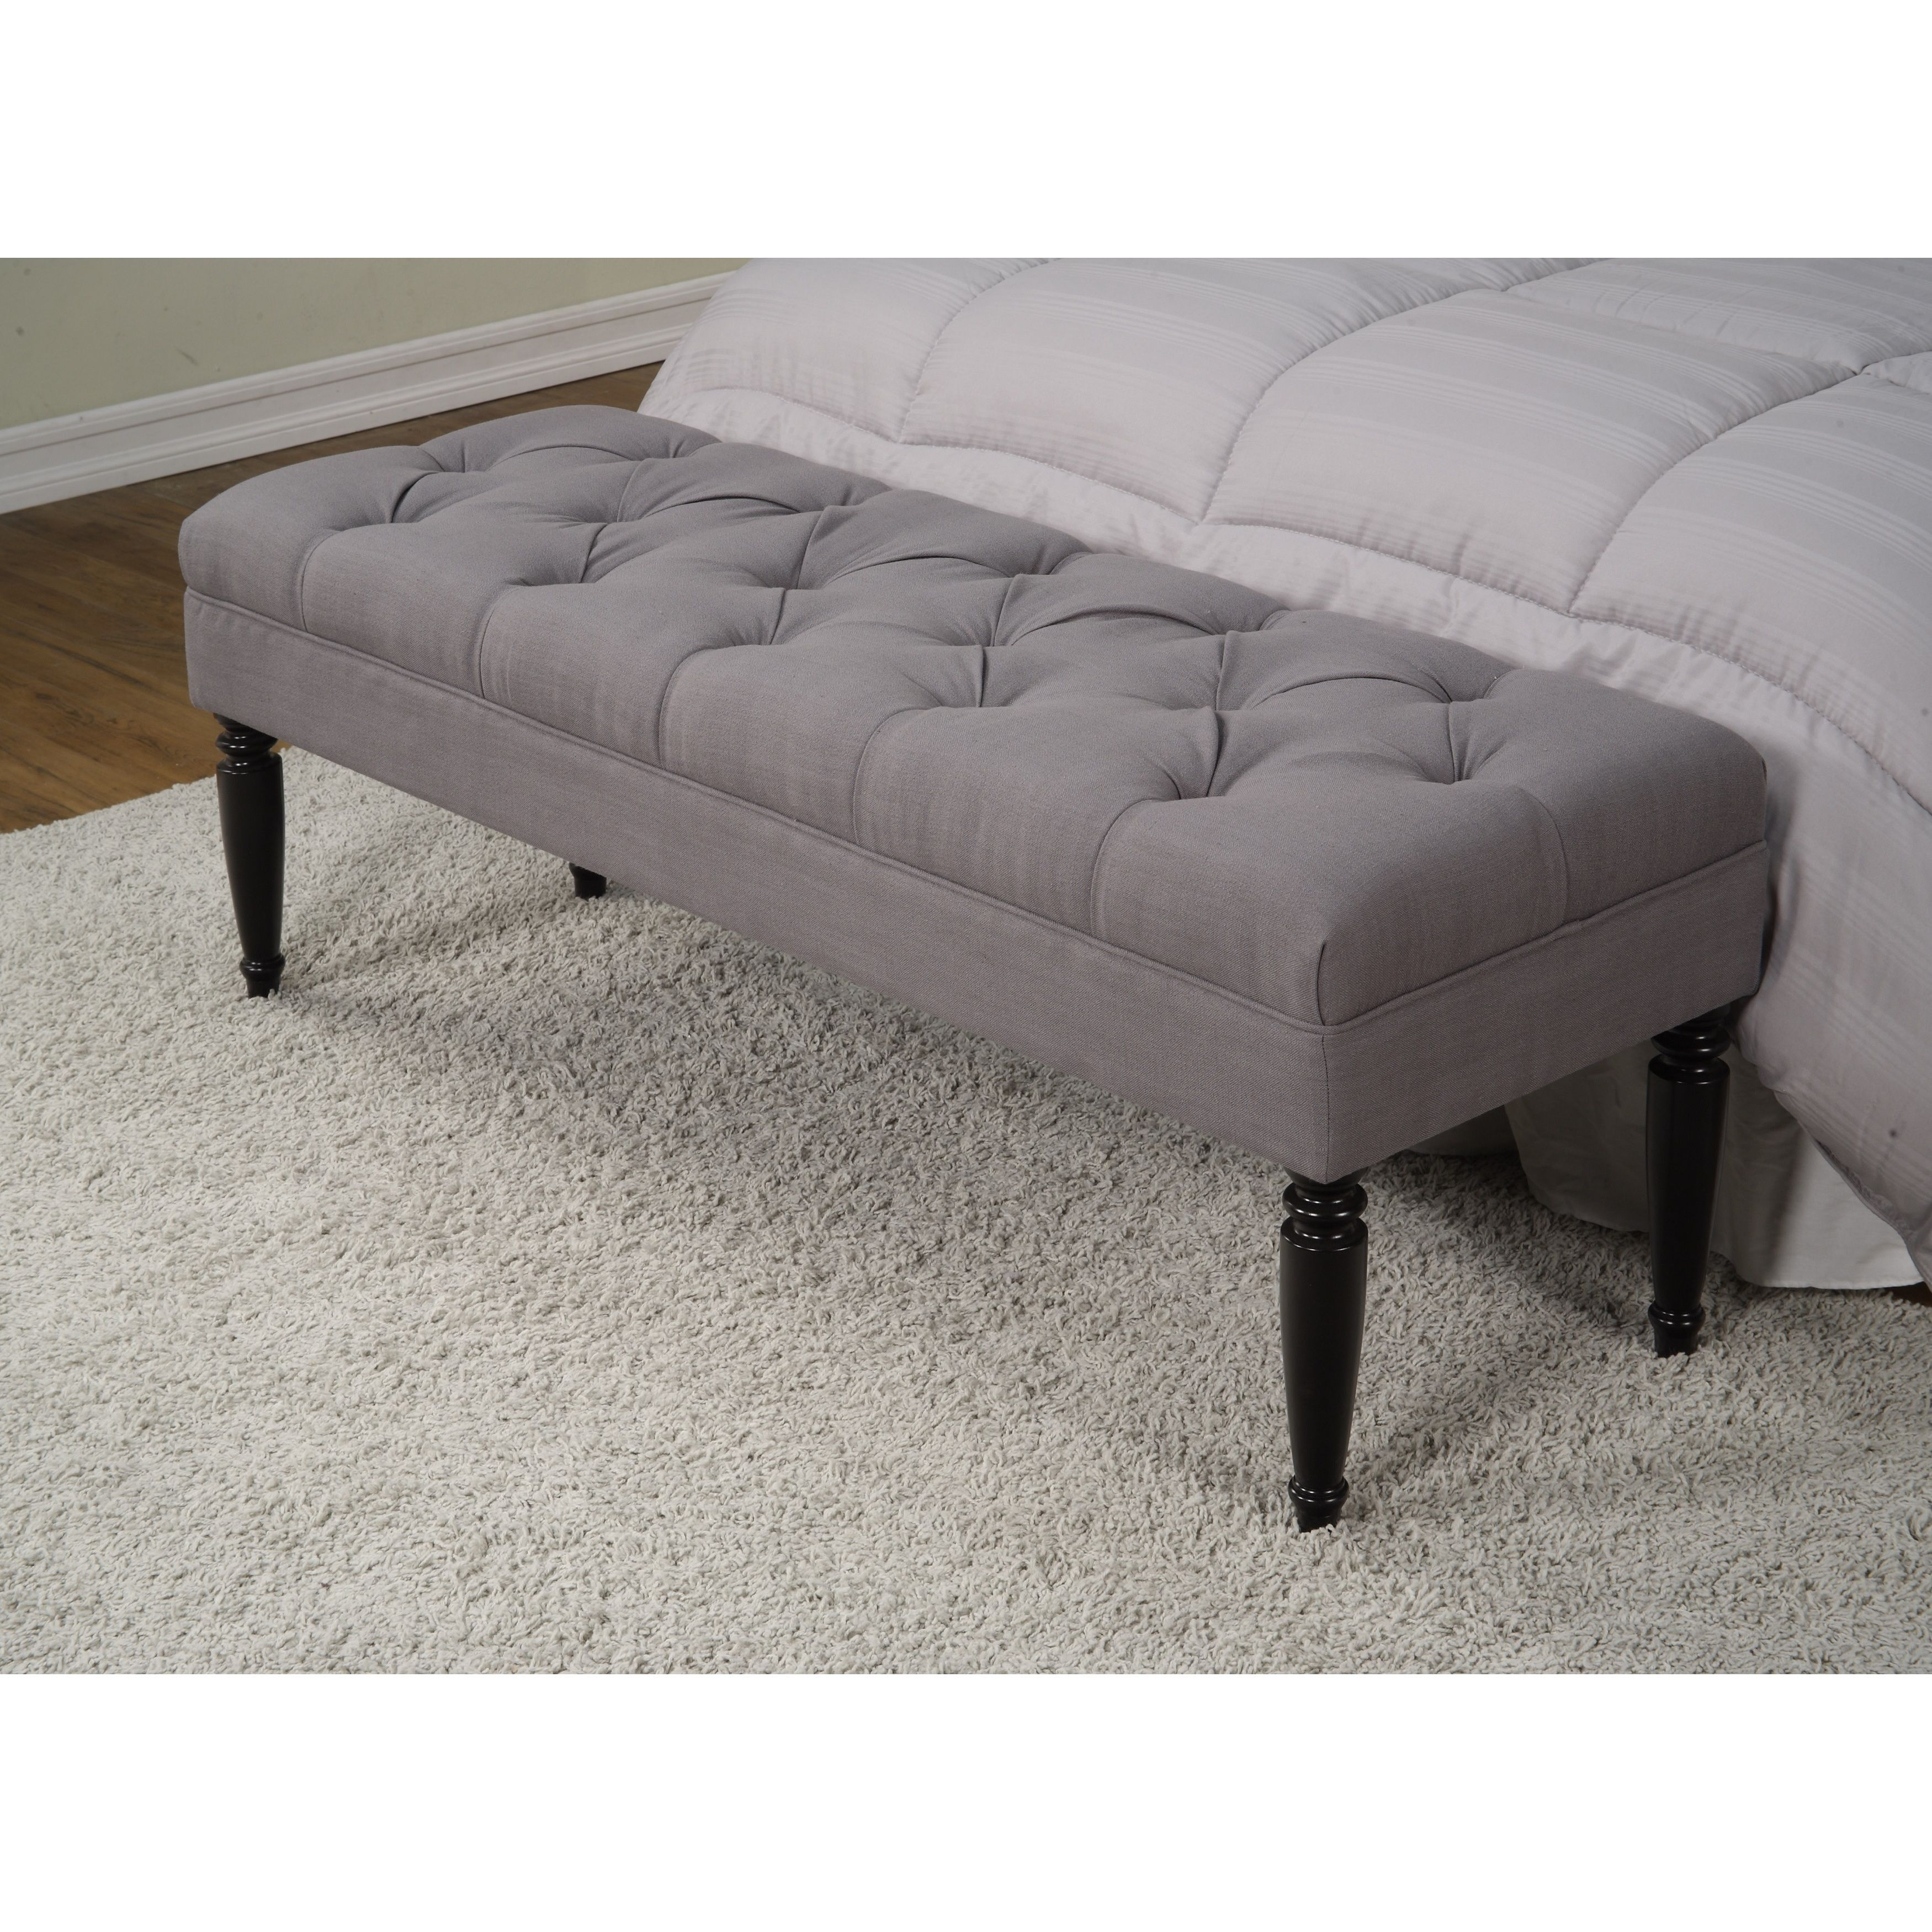 Claudia Diamond Wale Grey Tufted Bench Overstock Shopping Great